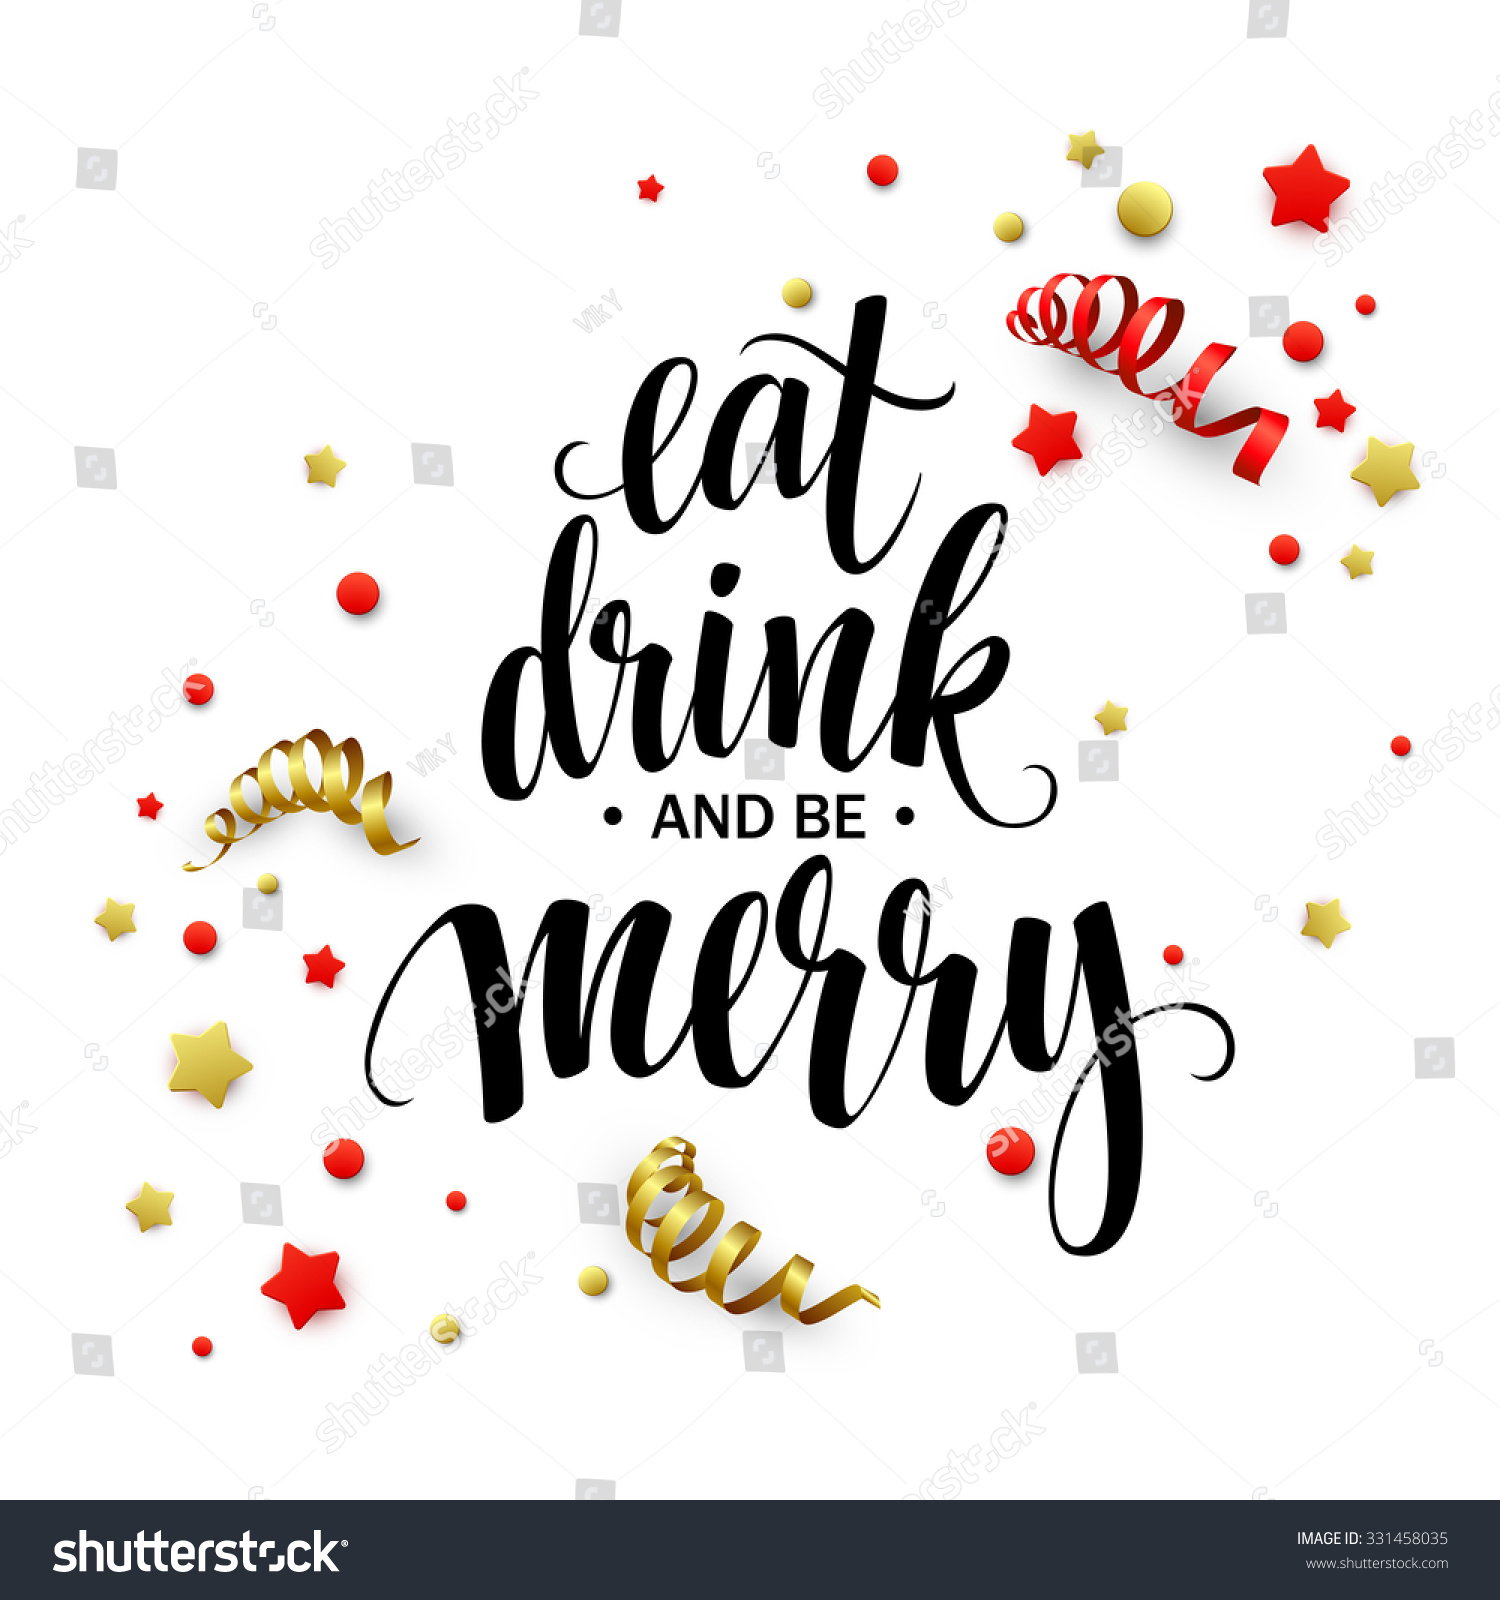 Eat Drink and Be Merry Clip Art